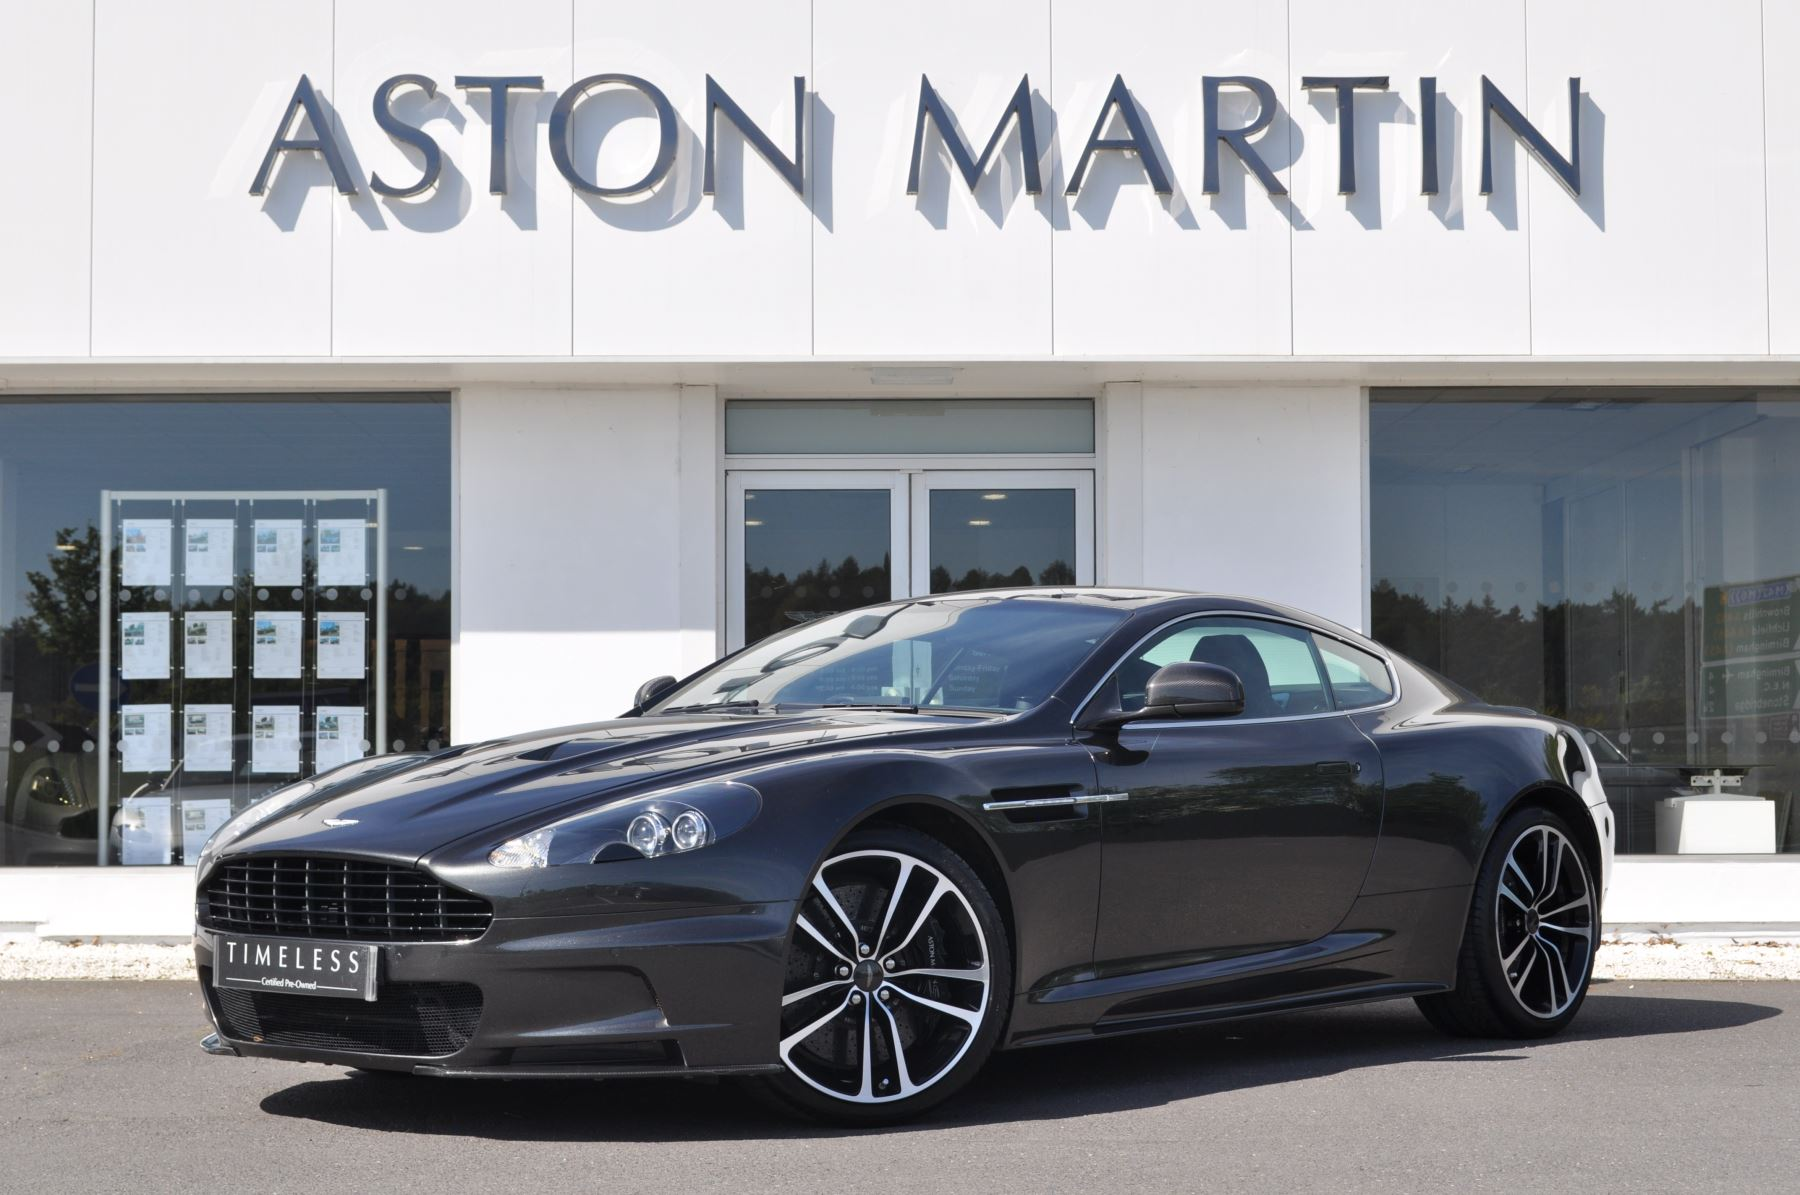 Aston Martin DBS V12 2dr Touchtronic 5.9 Automatic 3 door Coupe (2011) image